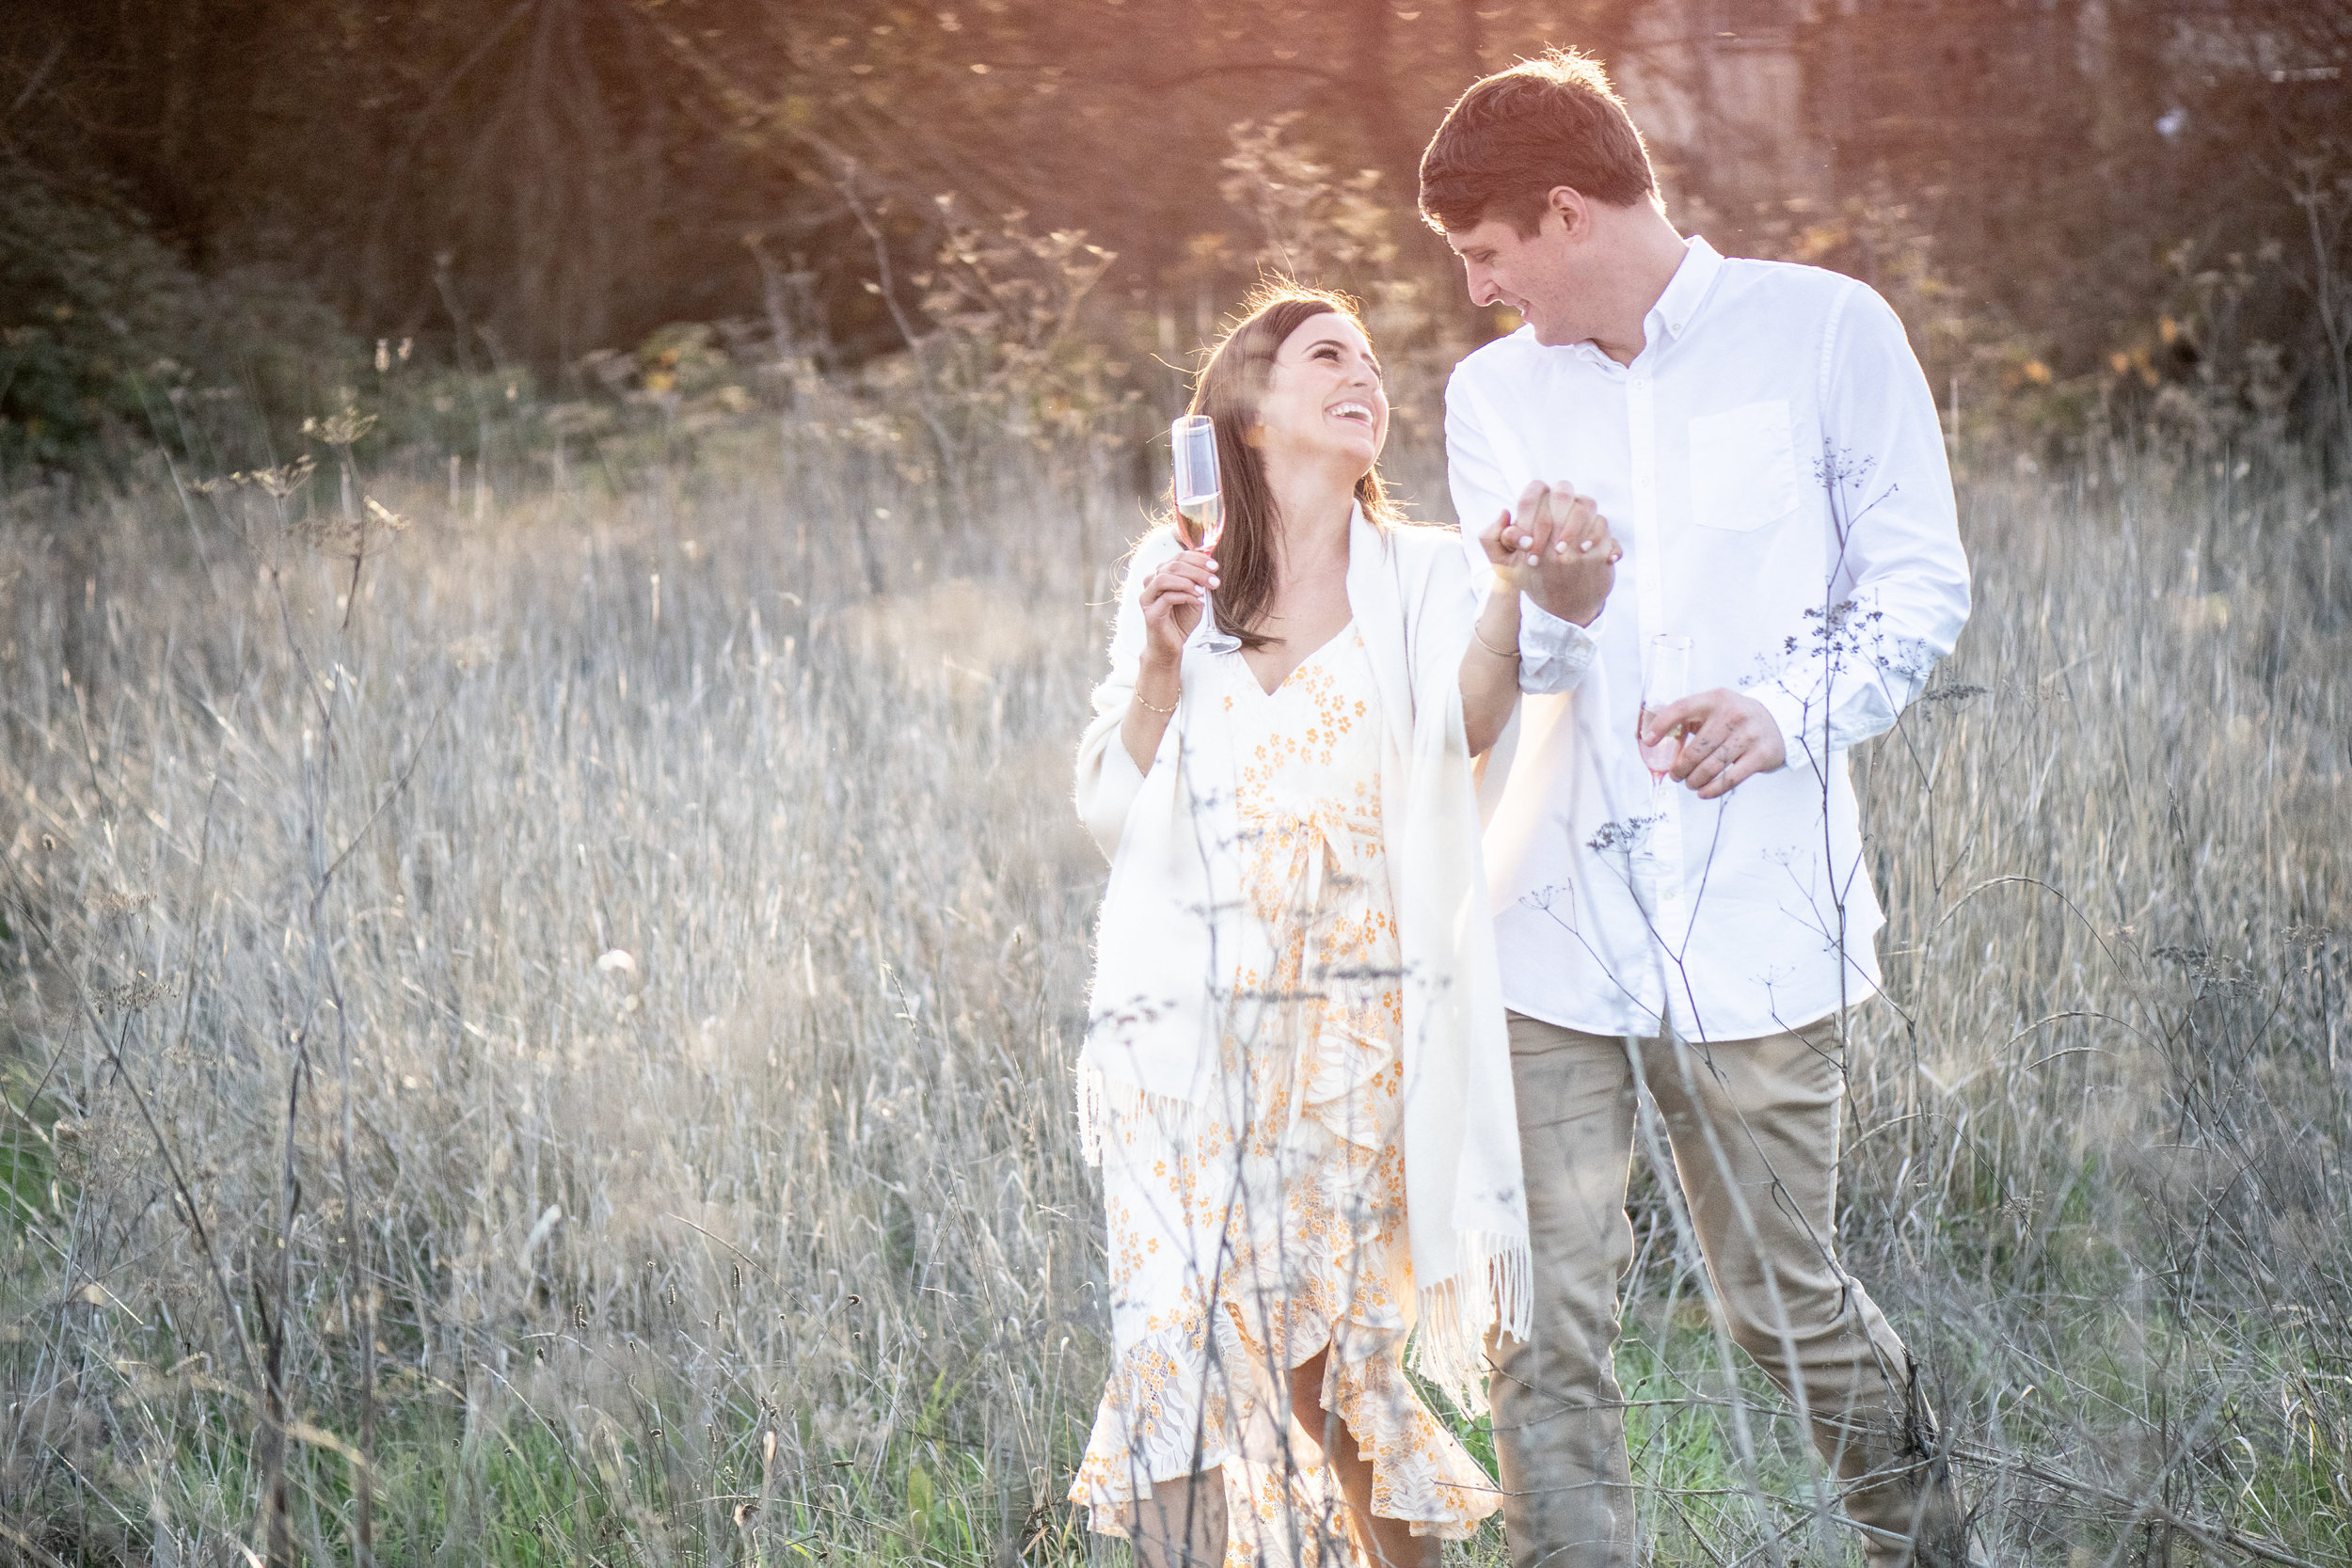 Hannah and Nick are Engaged-New Edits-0008 (1).jpg